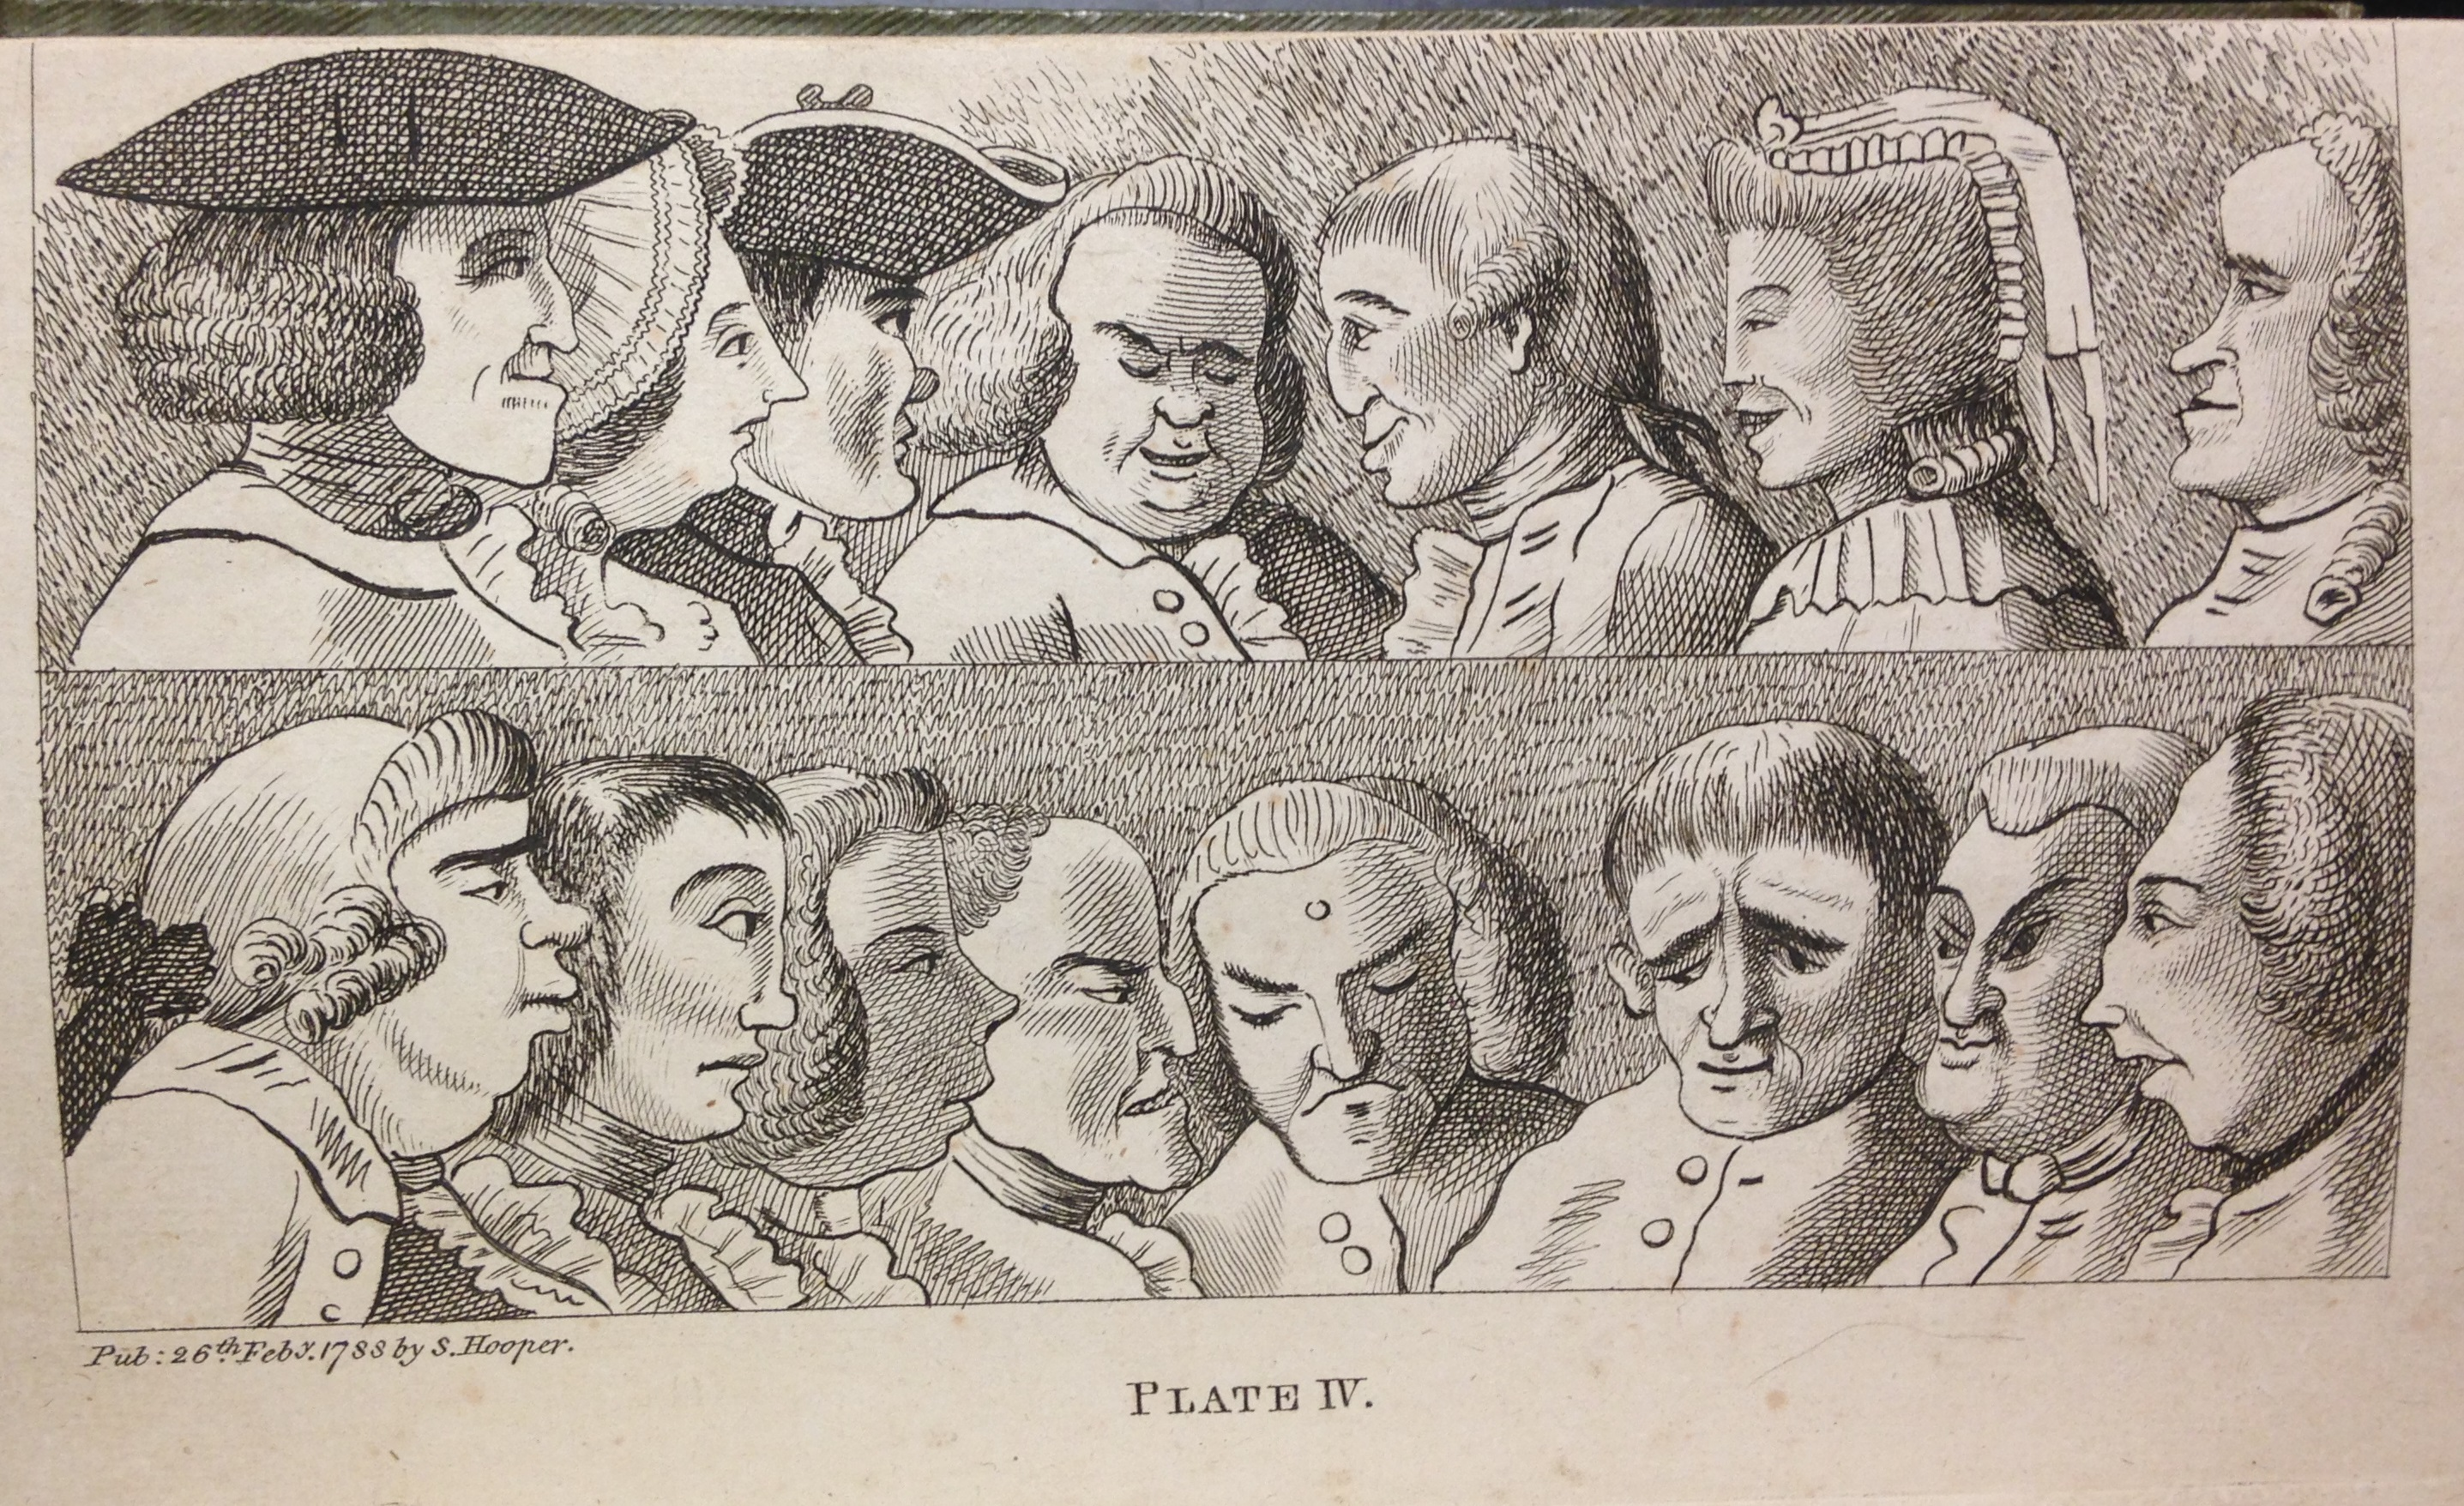 A lesson in caricature: examples of various noses, profiles, and head shapes. Francis Grose, Rules for drawing caricaturas, 2nd ed. (London, 1796), plate IV.   (NC1320 .G76 1796)